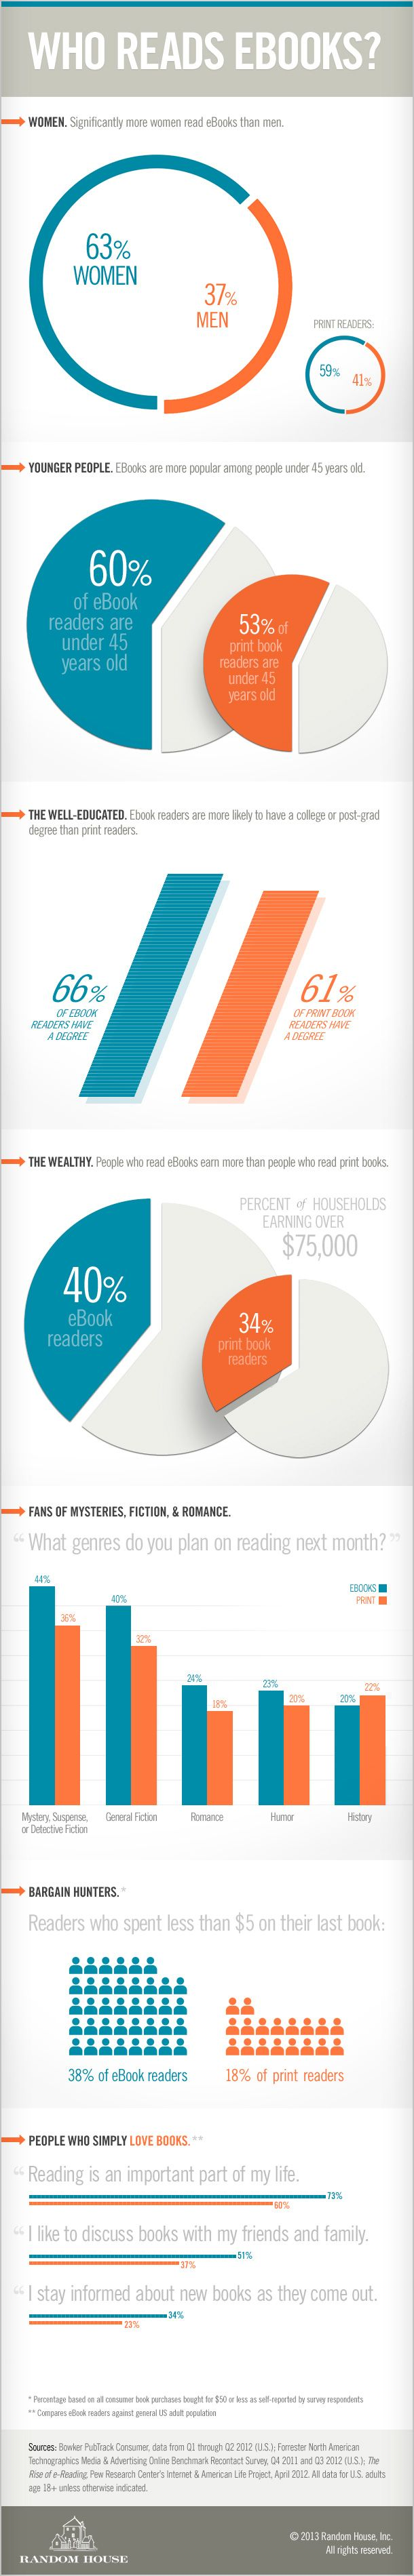 As Much As 38% Of Ebook Readers Spent Less Than $5 On Their Last Title